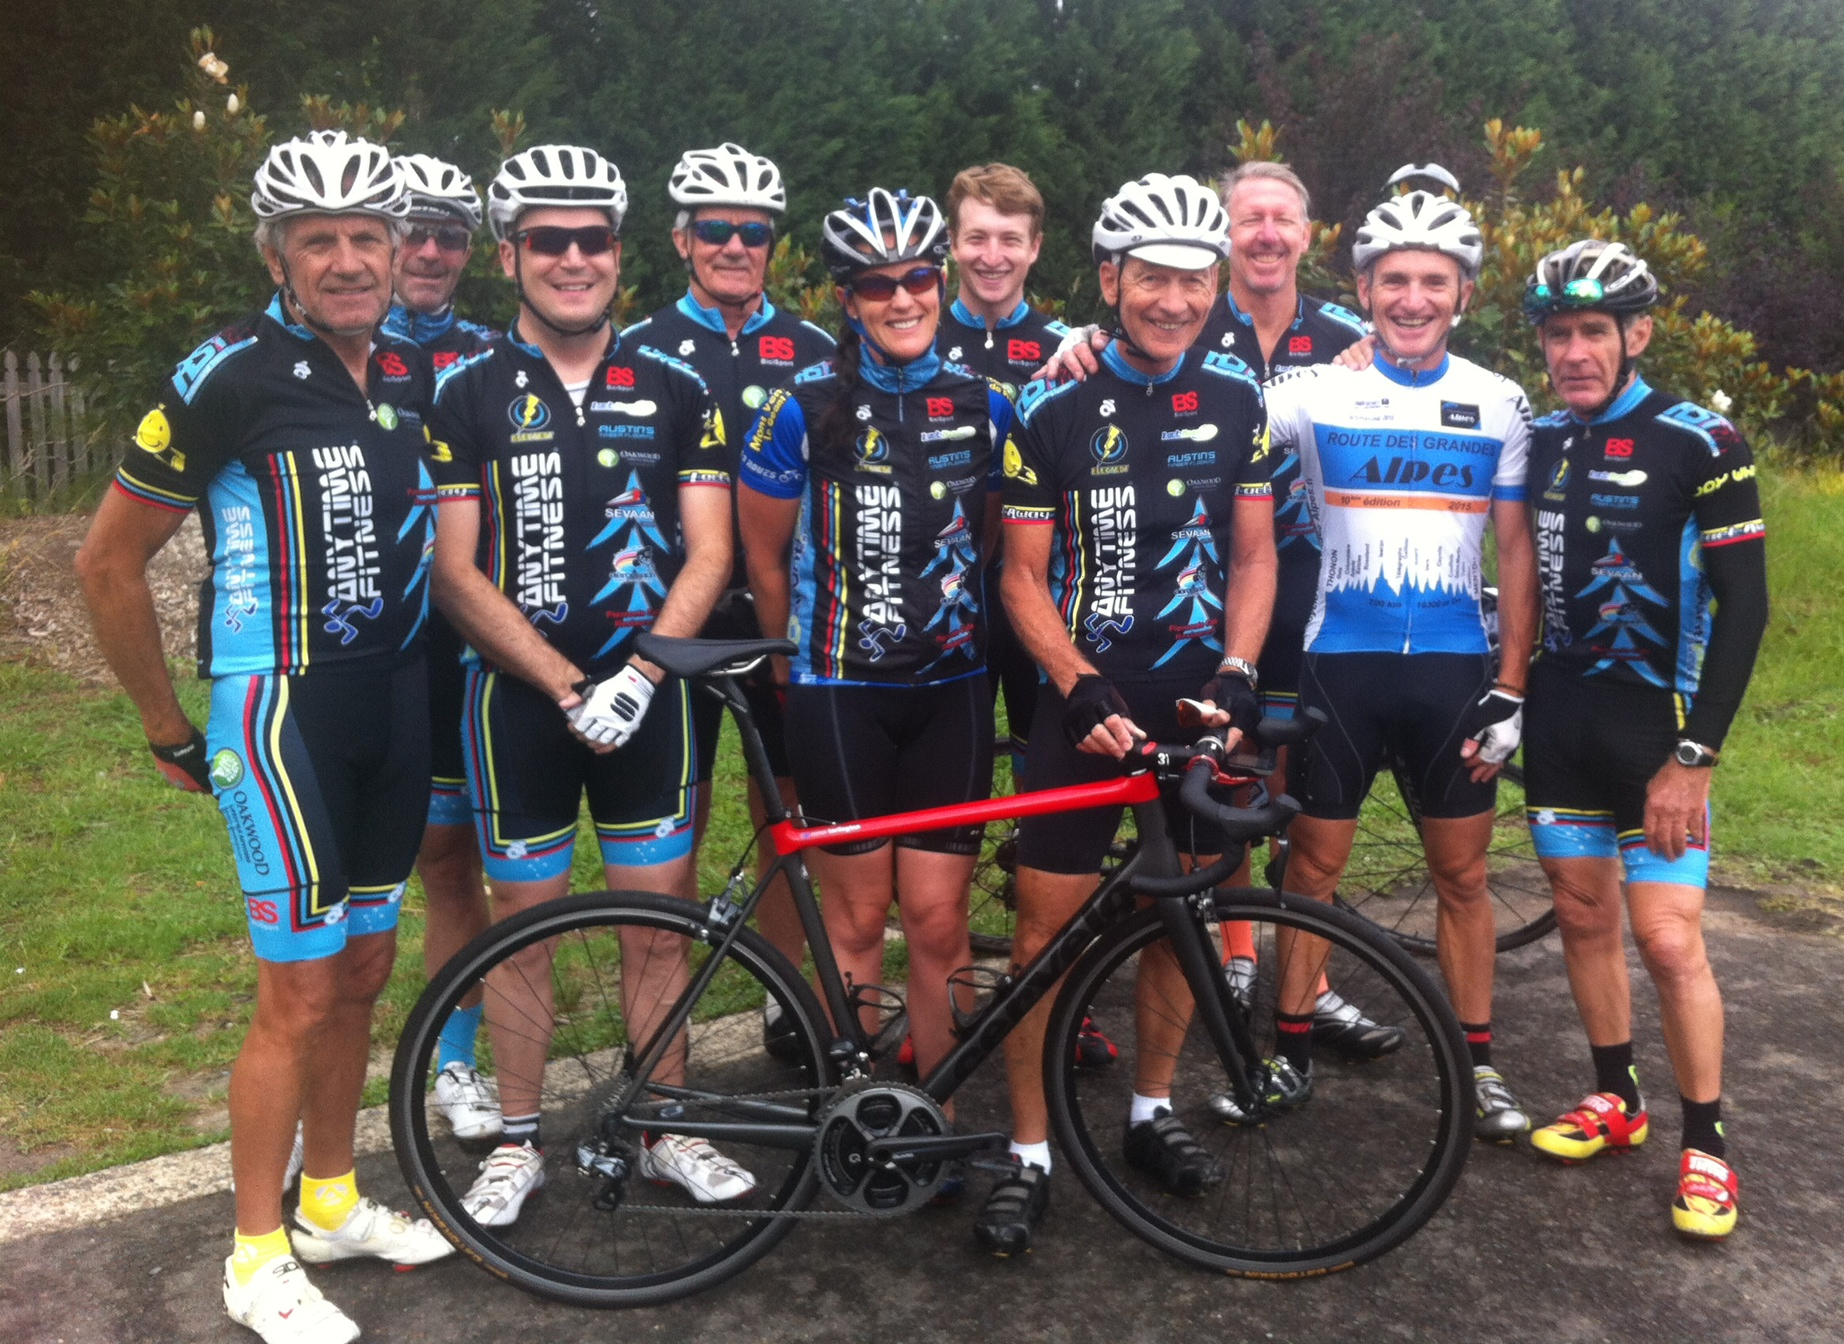 BiciSport Christmas Ride 2016 - the weather was poor with light drizzle but smiles all round.